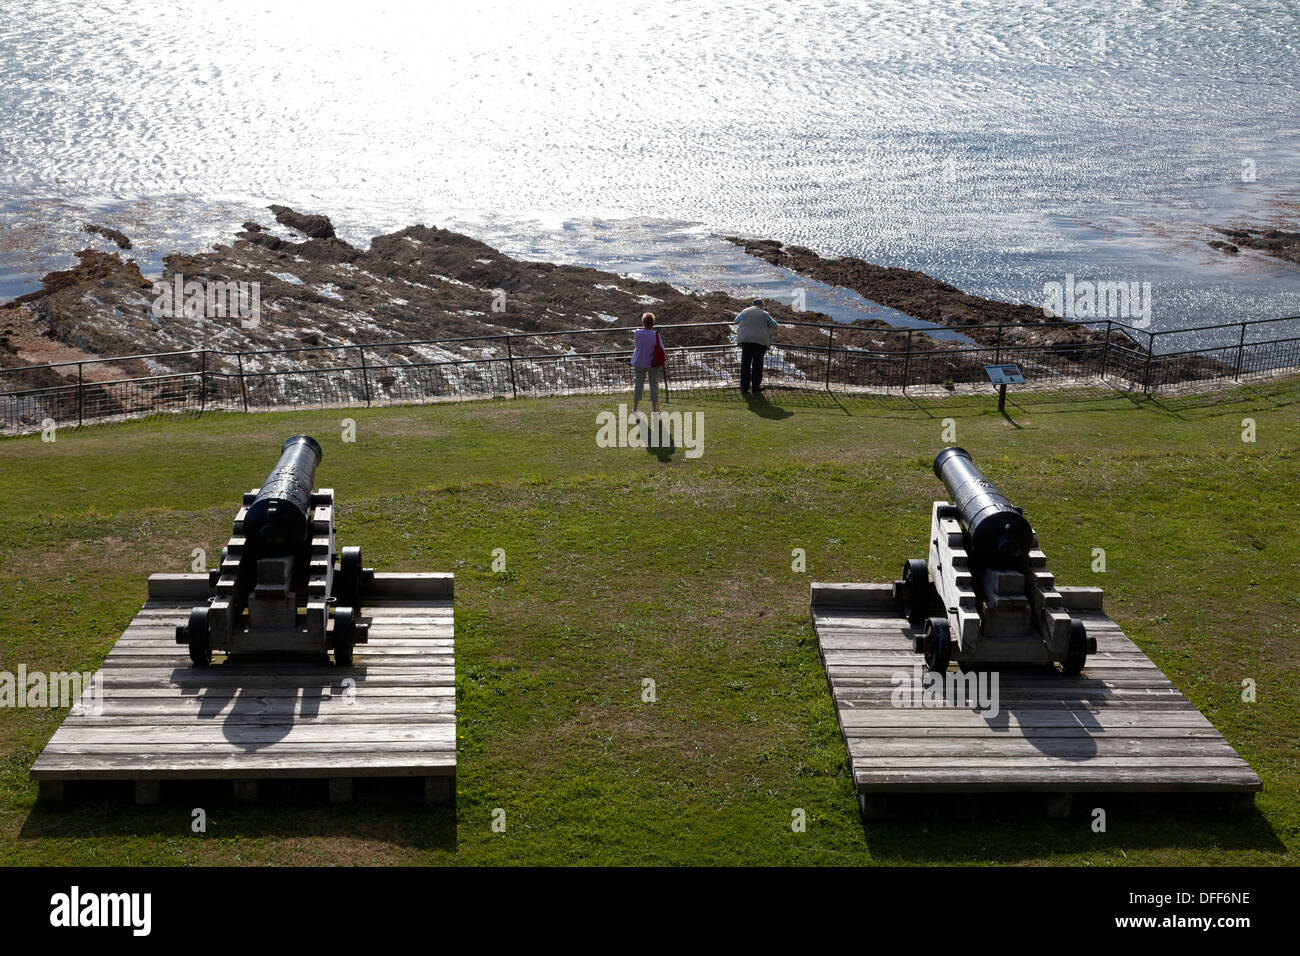 The cannons of St Mawes Castle facing across Carrick Roads, St Mawes, Cornwall - Stock Image